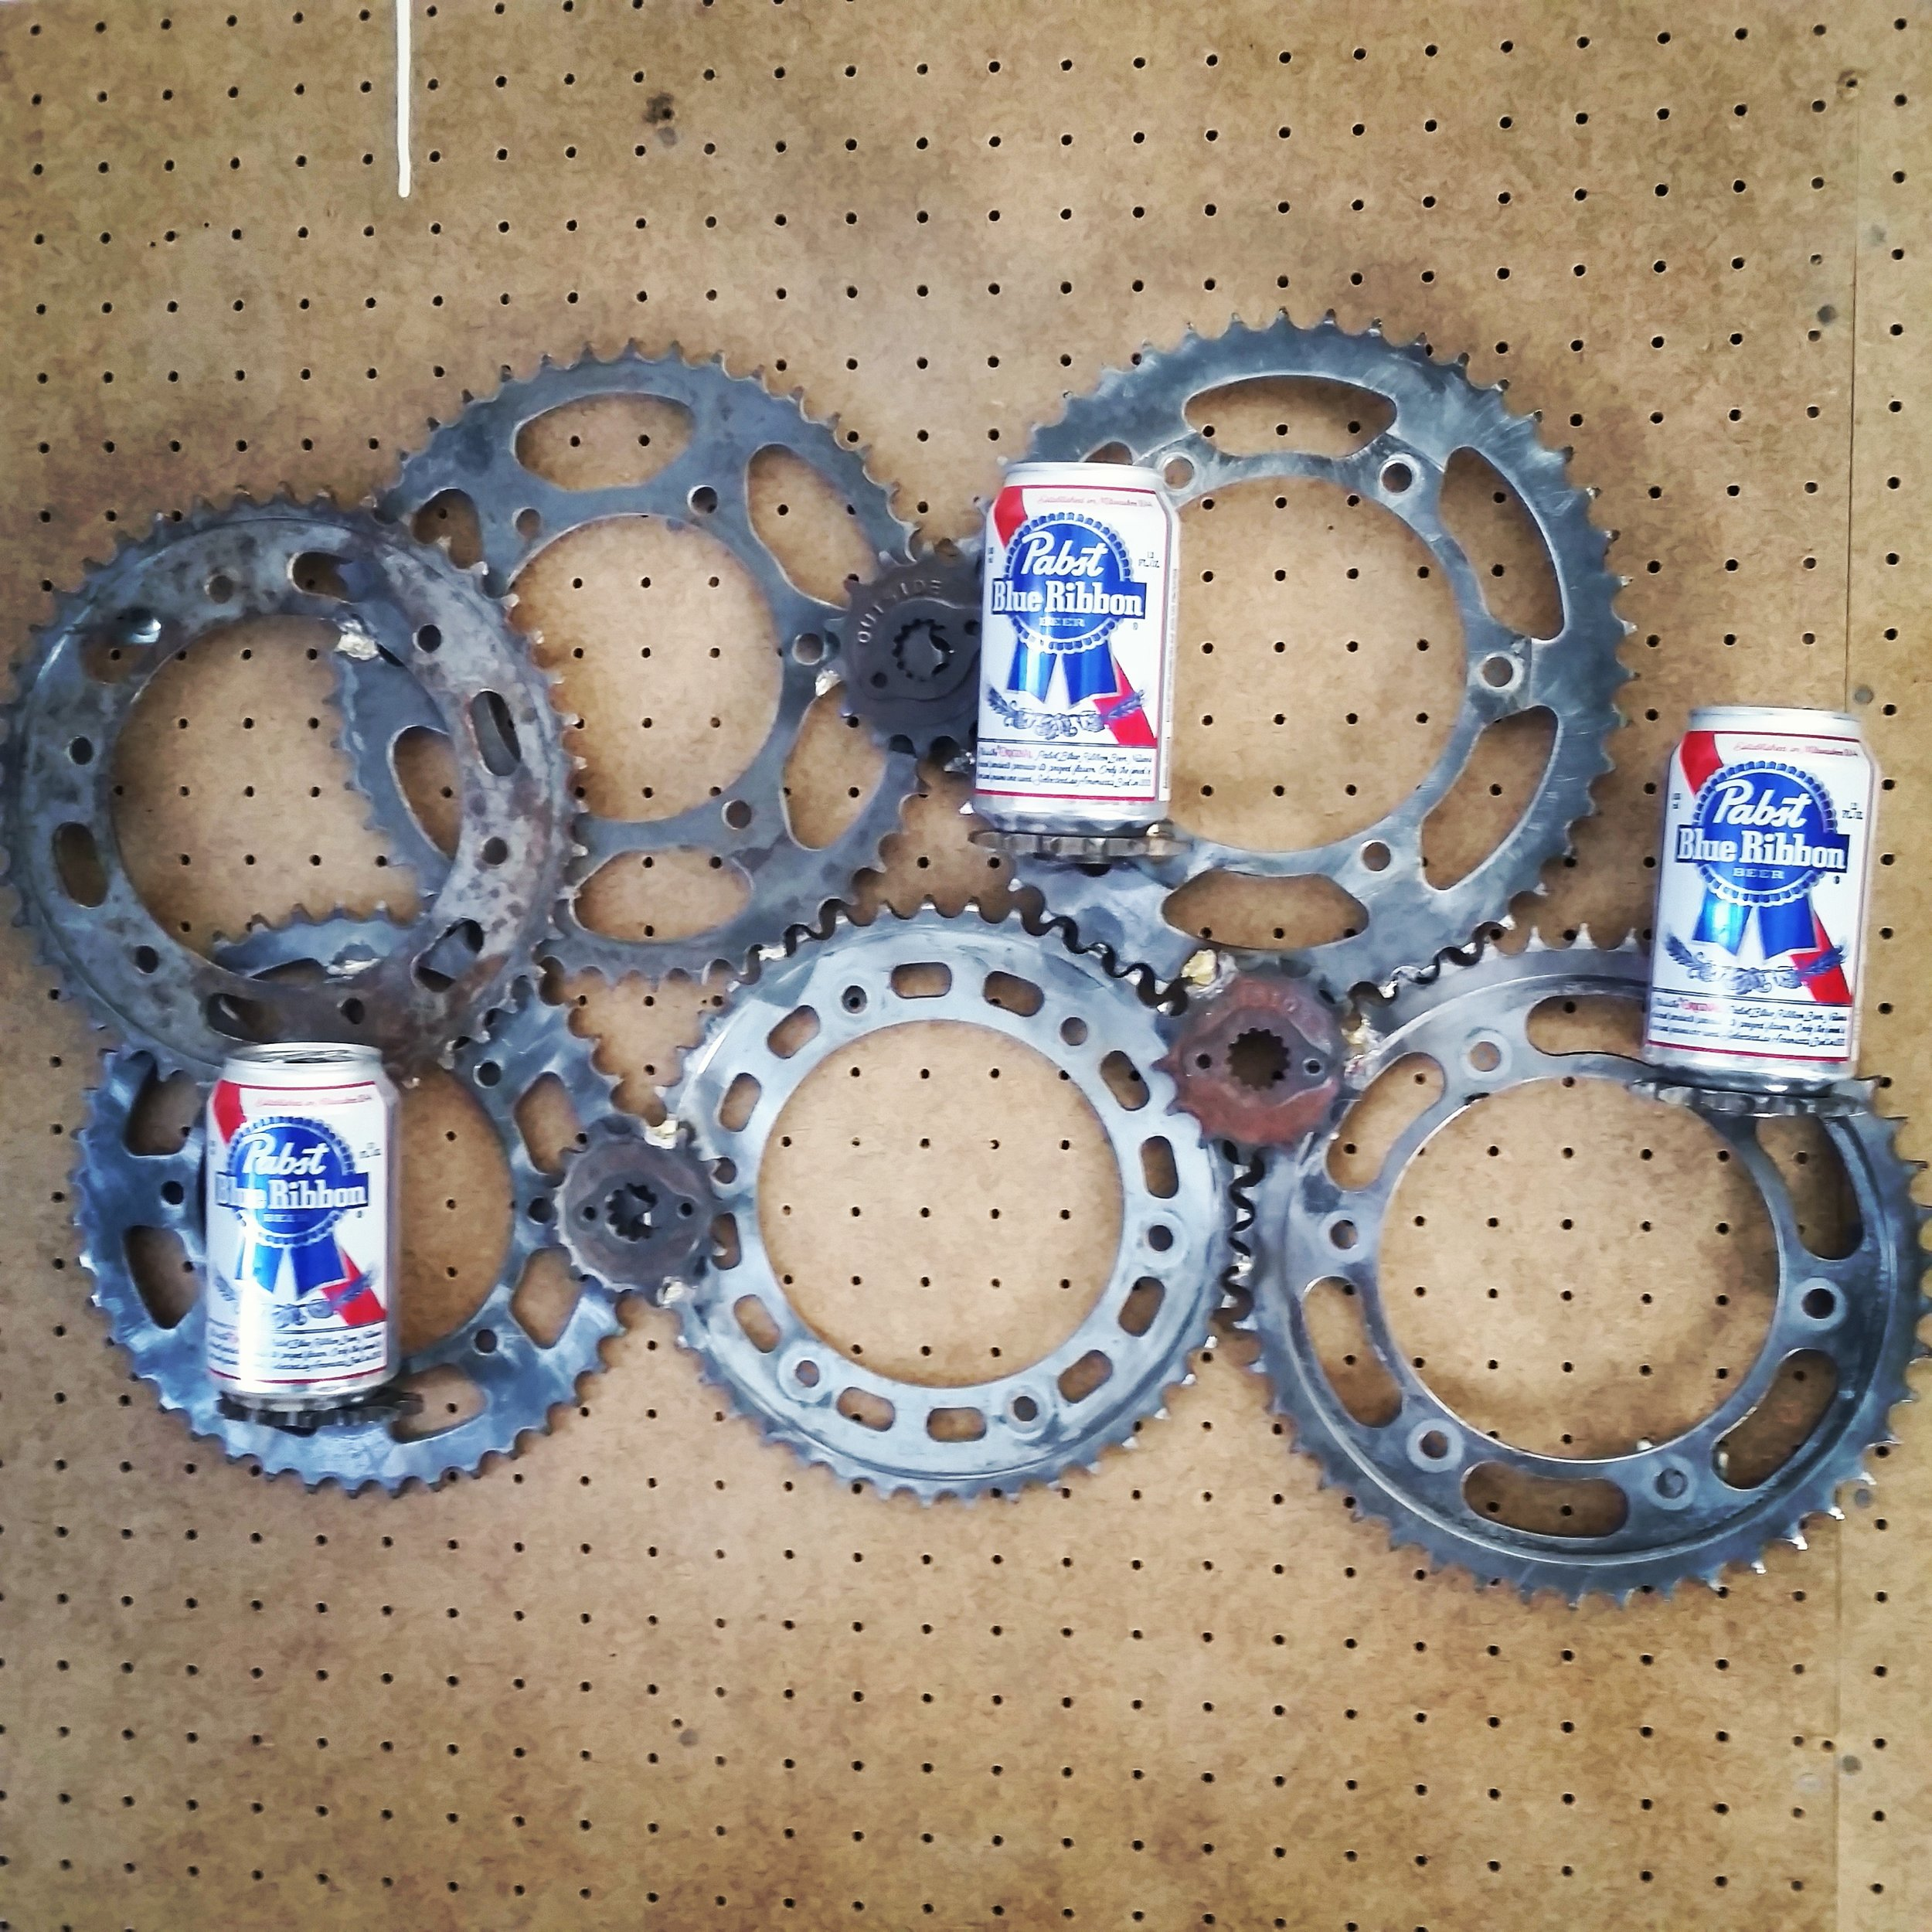 A piece of wall art made from old motorcycle sprockets brazed together.